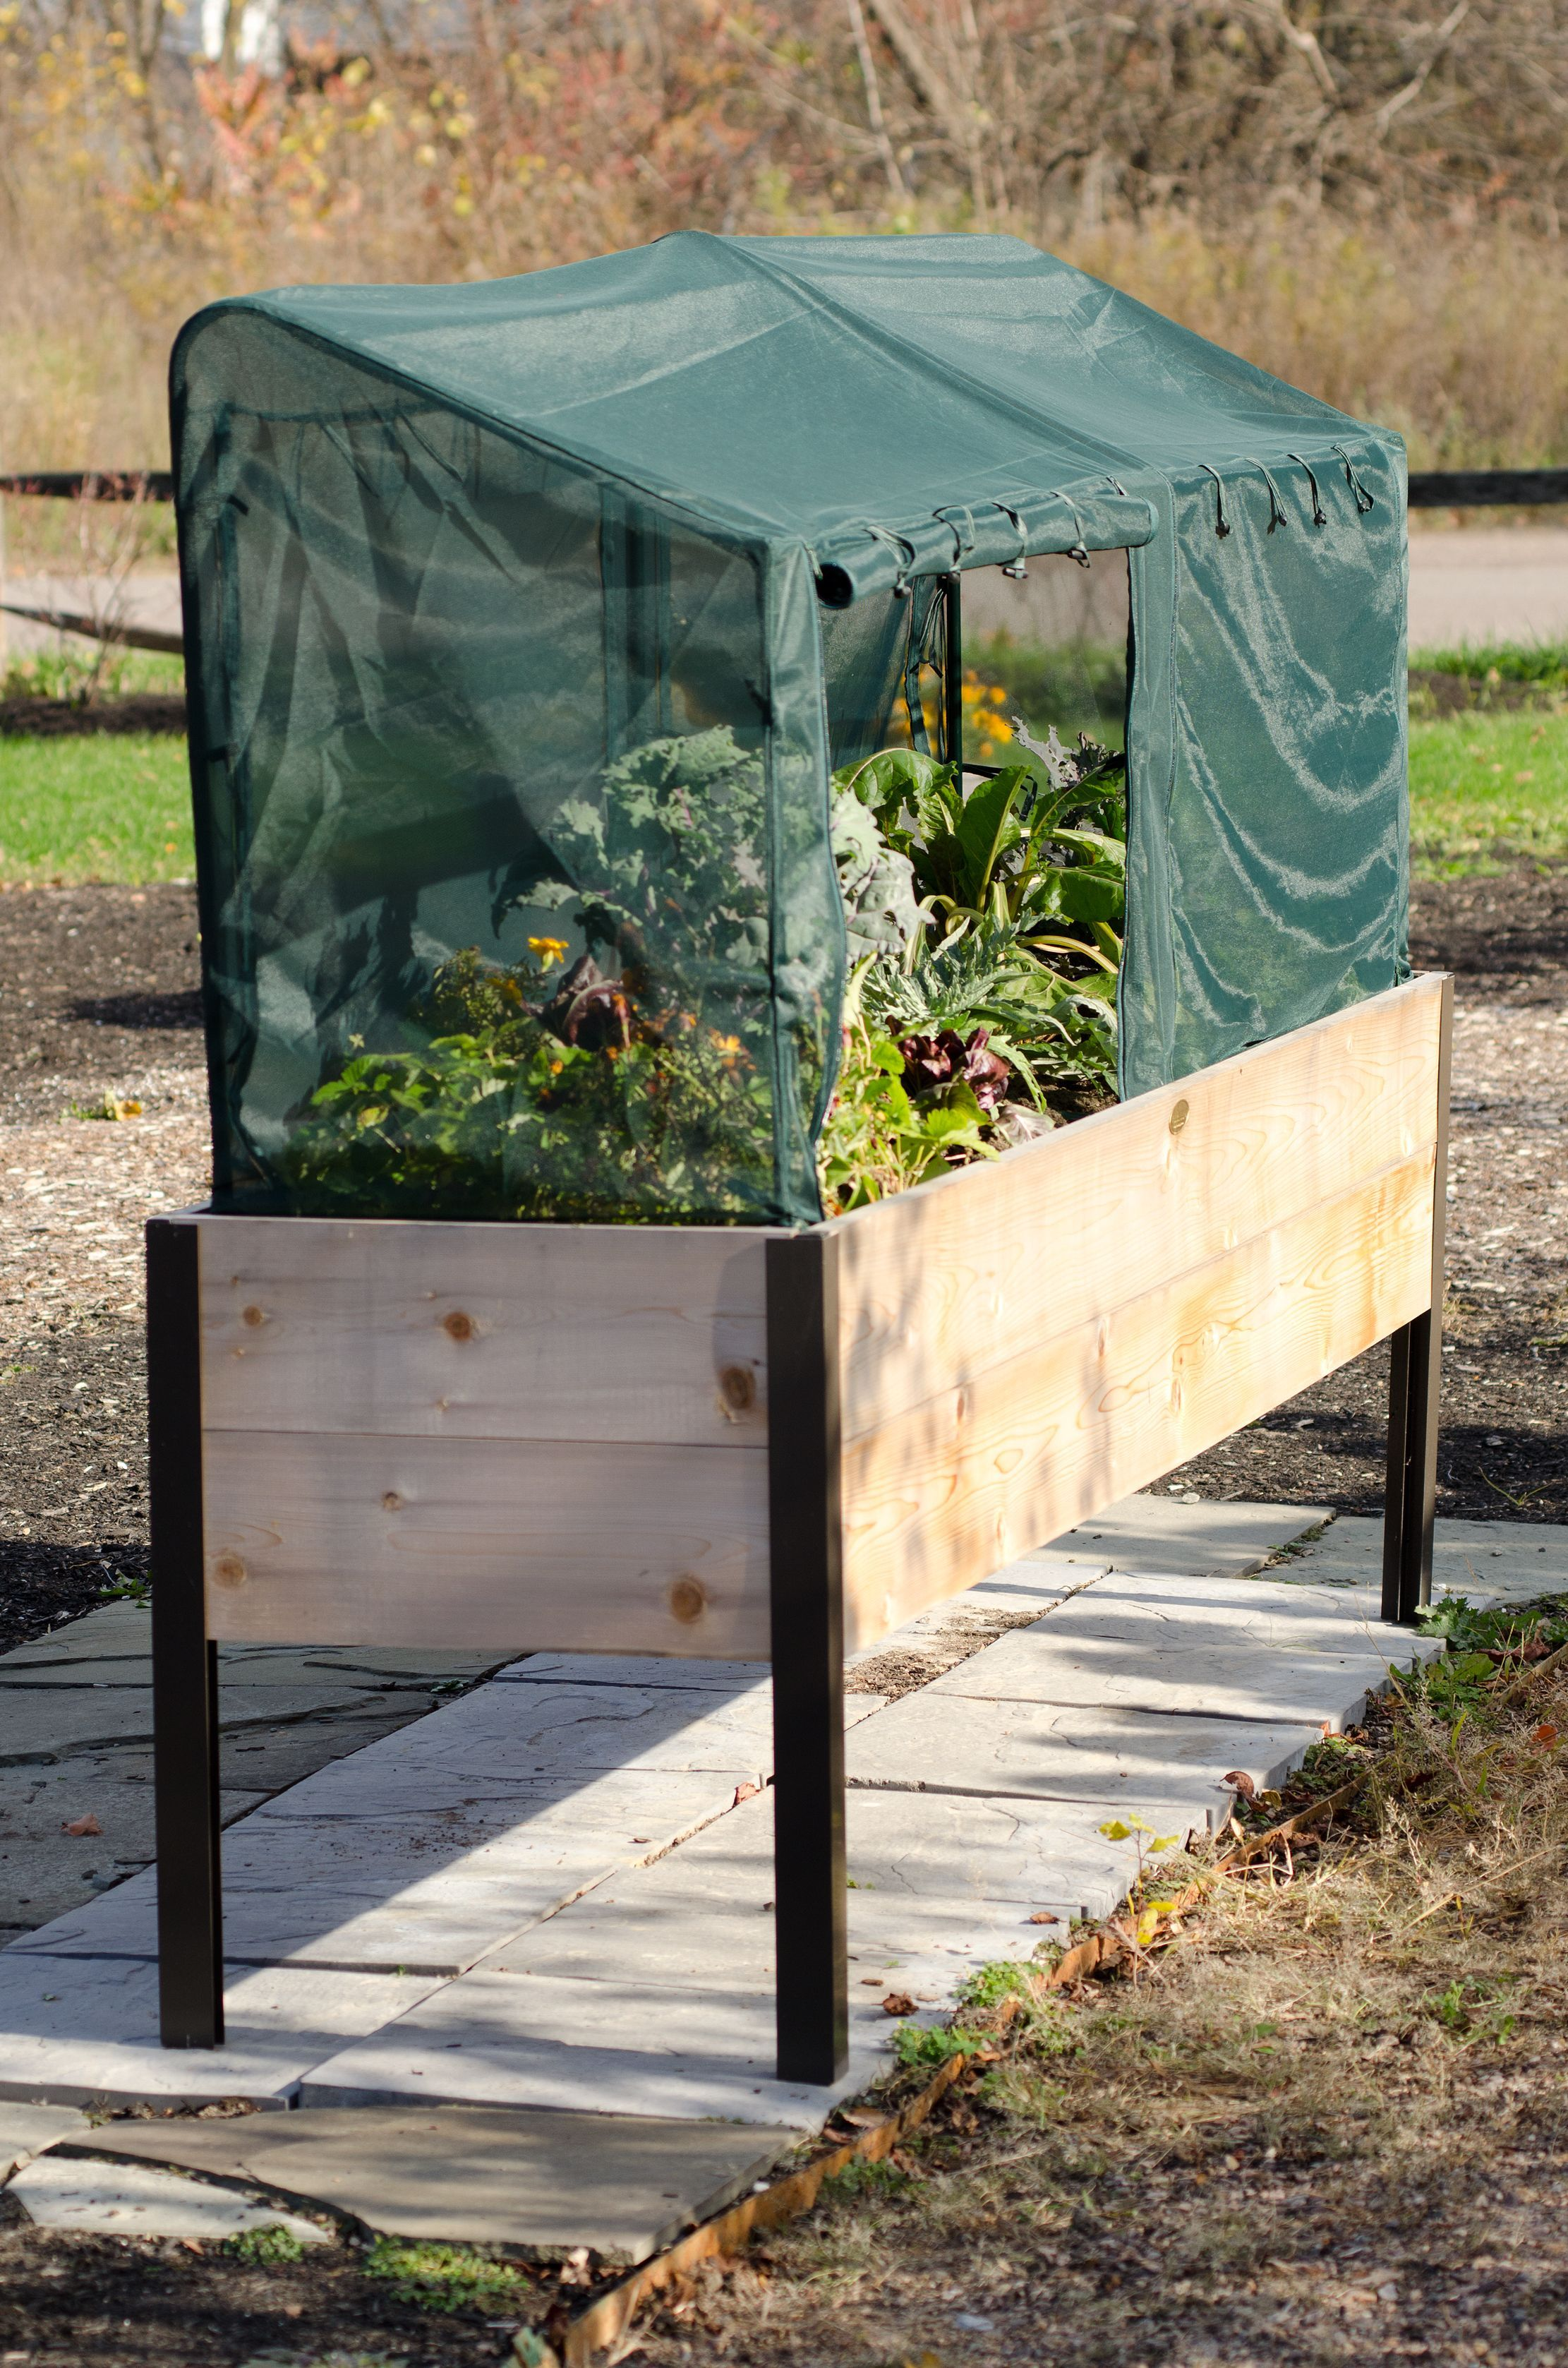 Protect Plants with Frame + Warming & Pest Control Covers